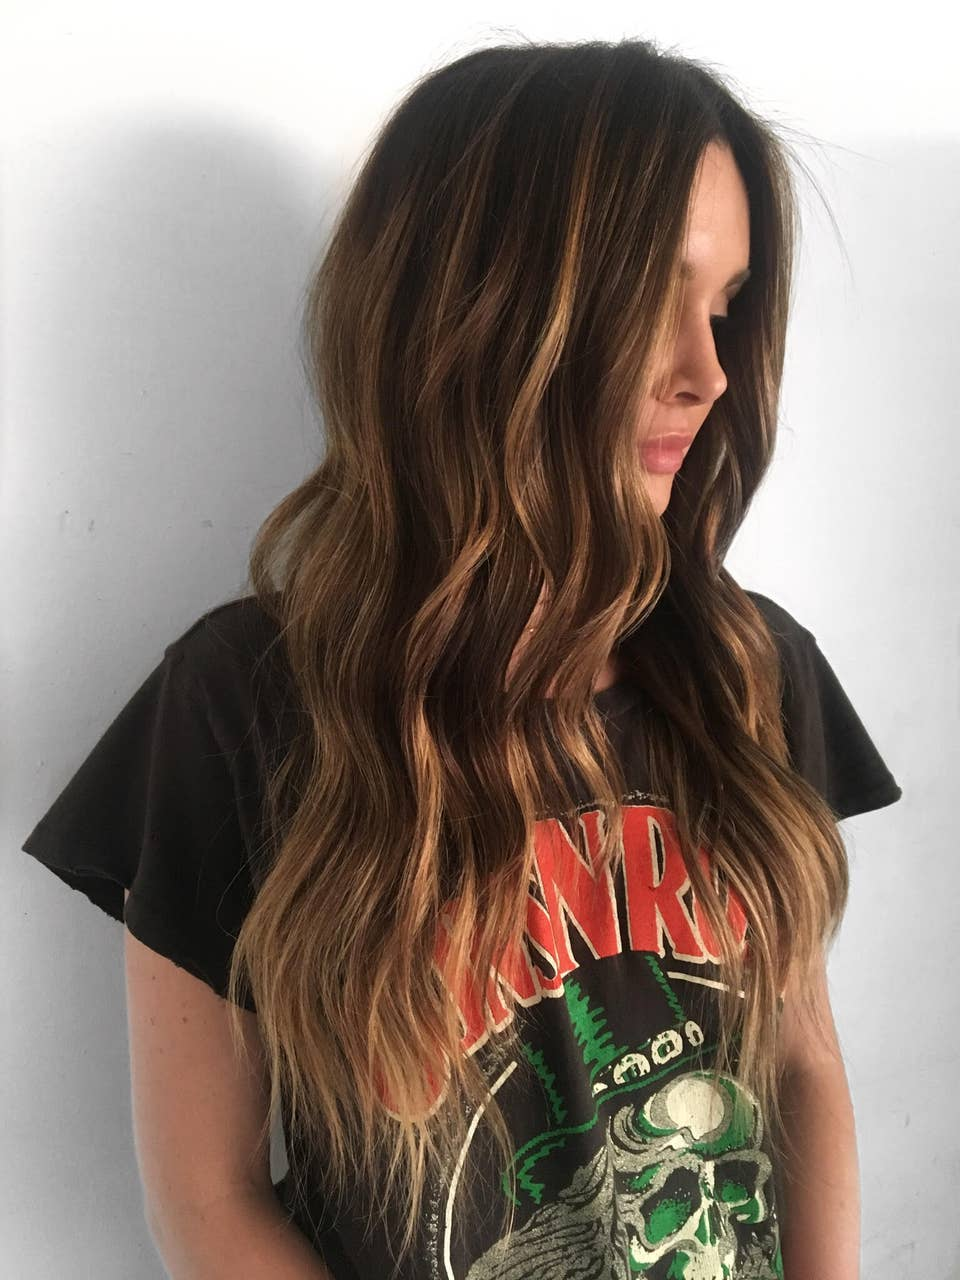 2019 Hair Color Trends That Will Be Huge This Year